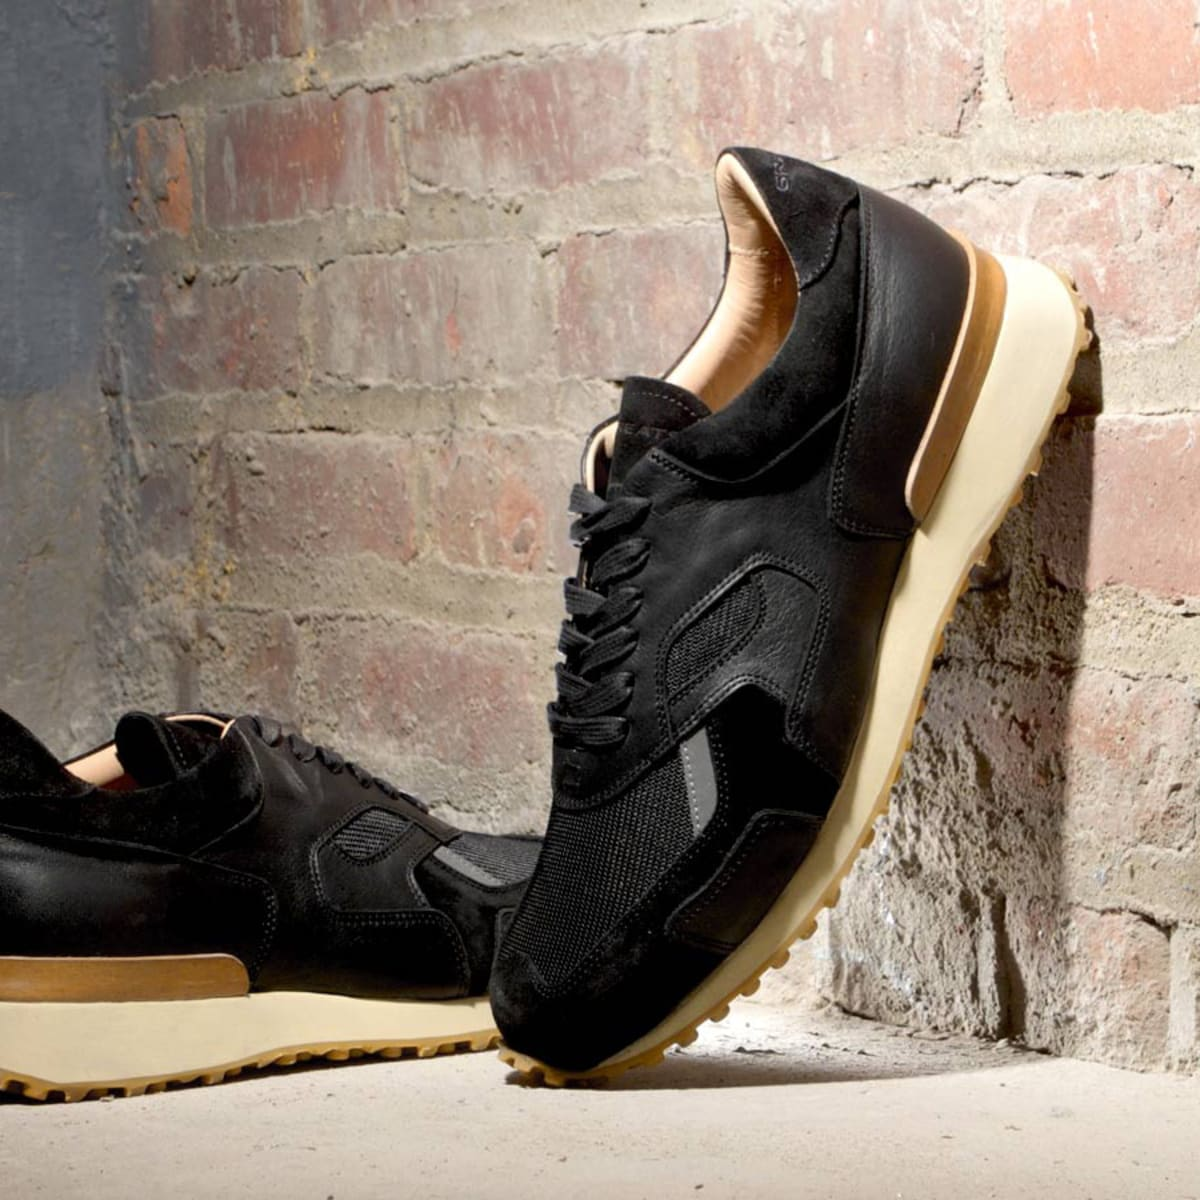 Greats Introduces the Pronto Nero